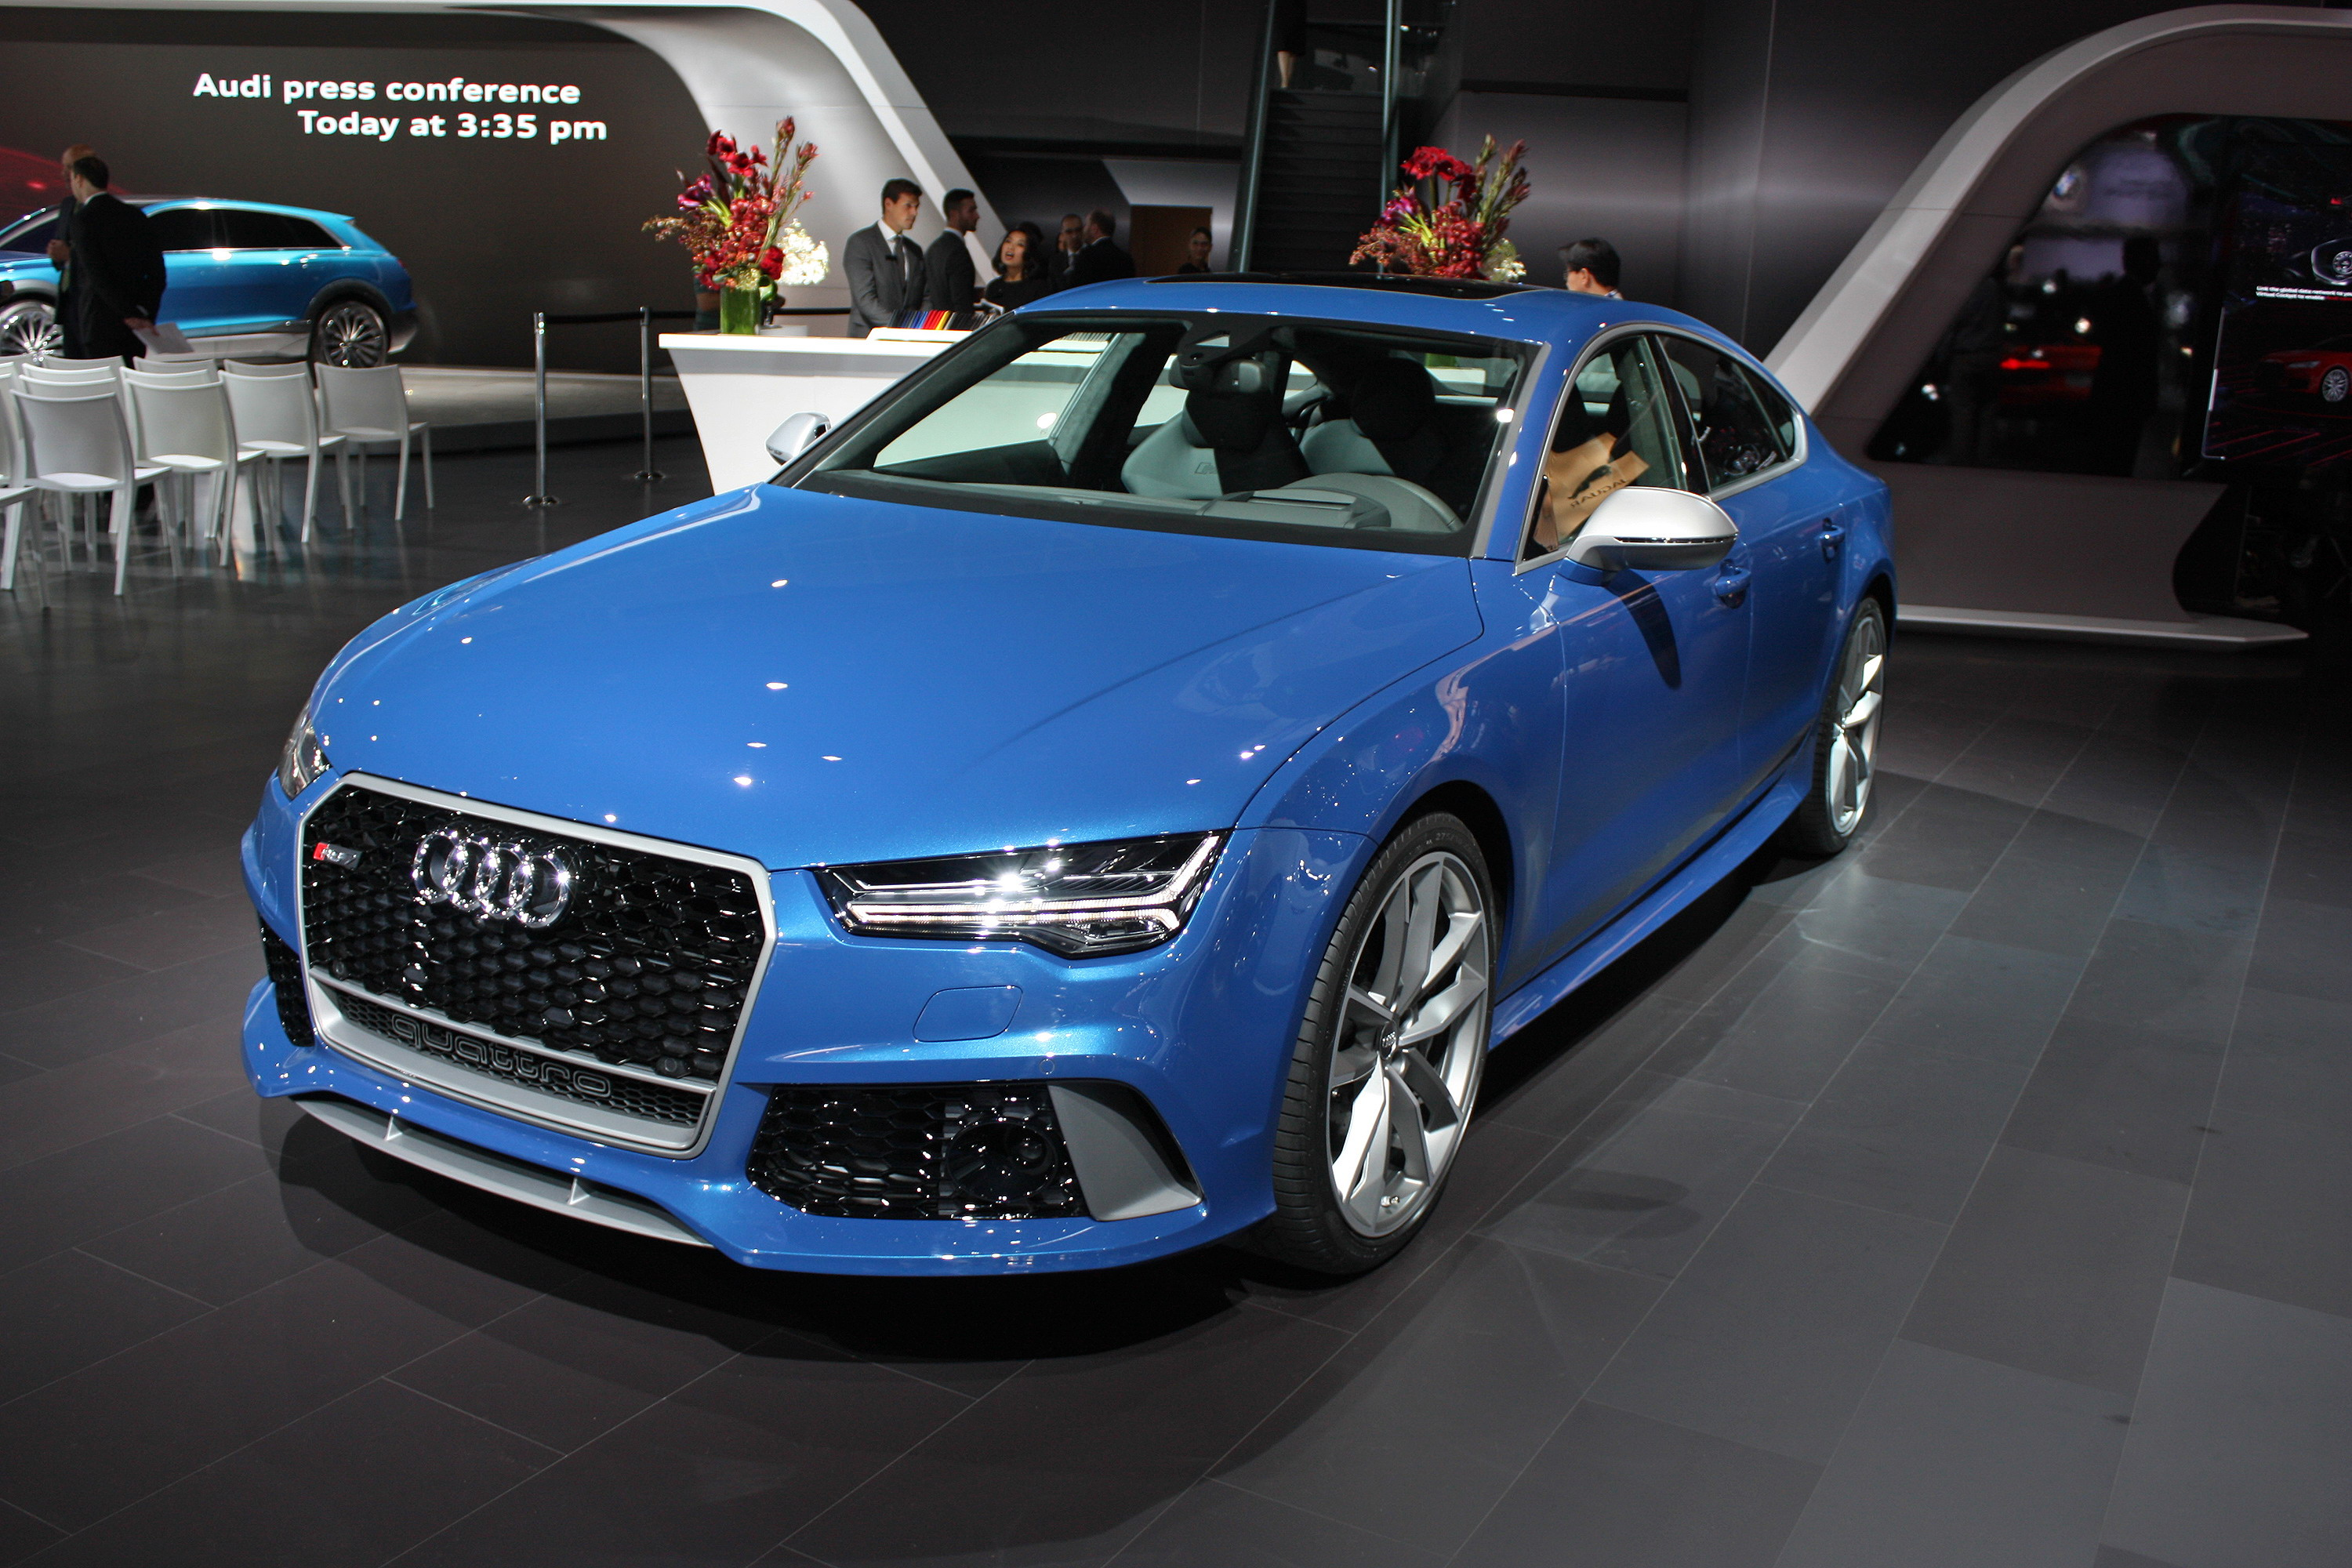 2016 Audi RS 7 Sportback Performance | Top Speed. »